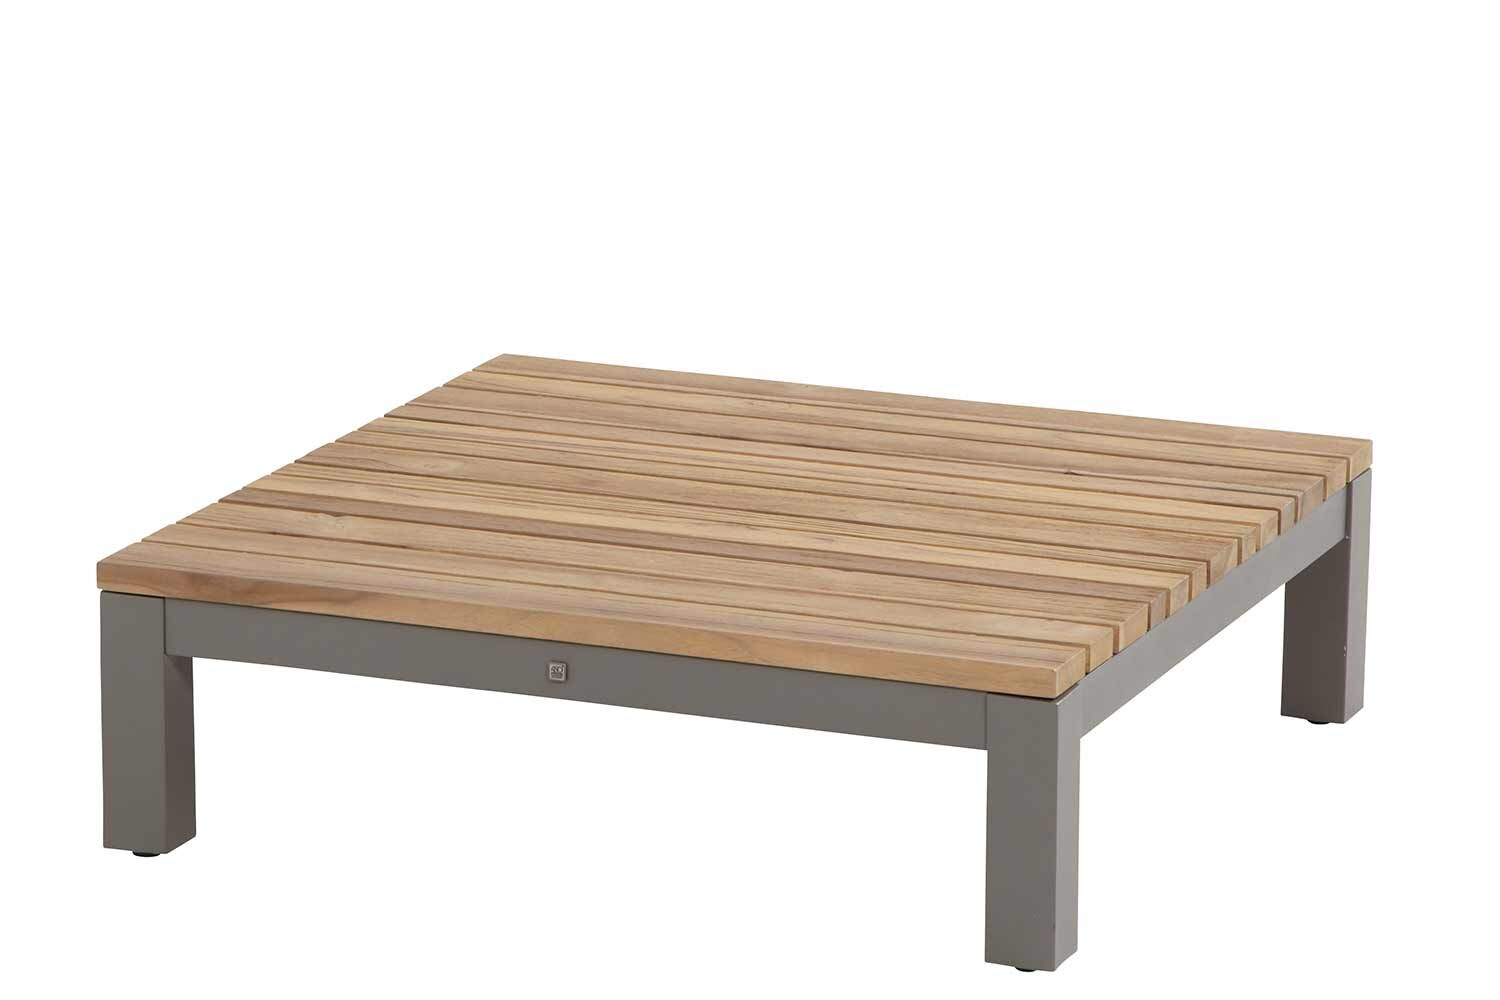 4 Seasons Outdoor Fidji hoek module / loungetafel 85 x 85 x 26 cm